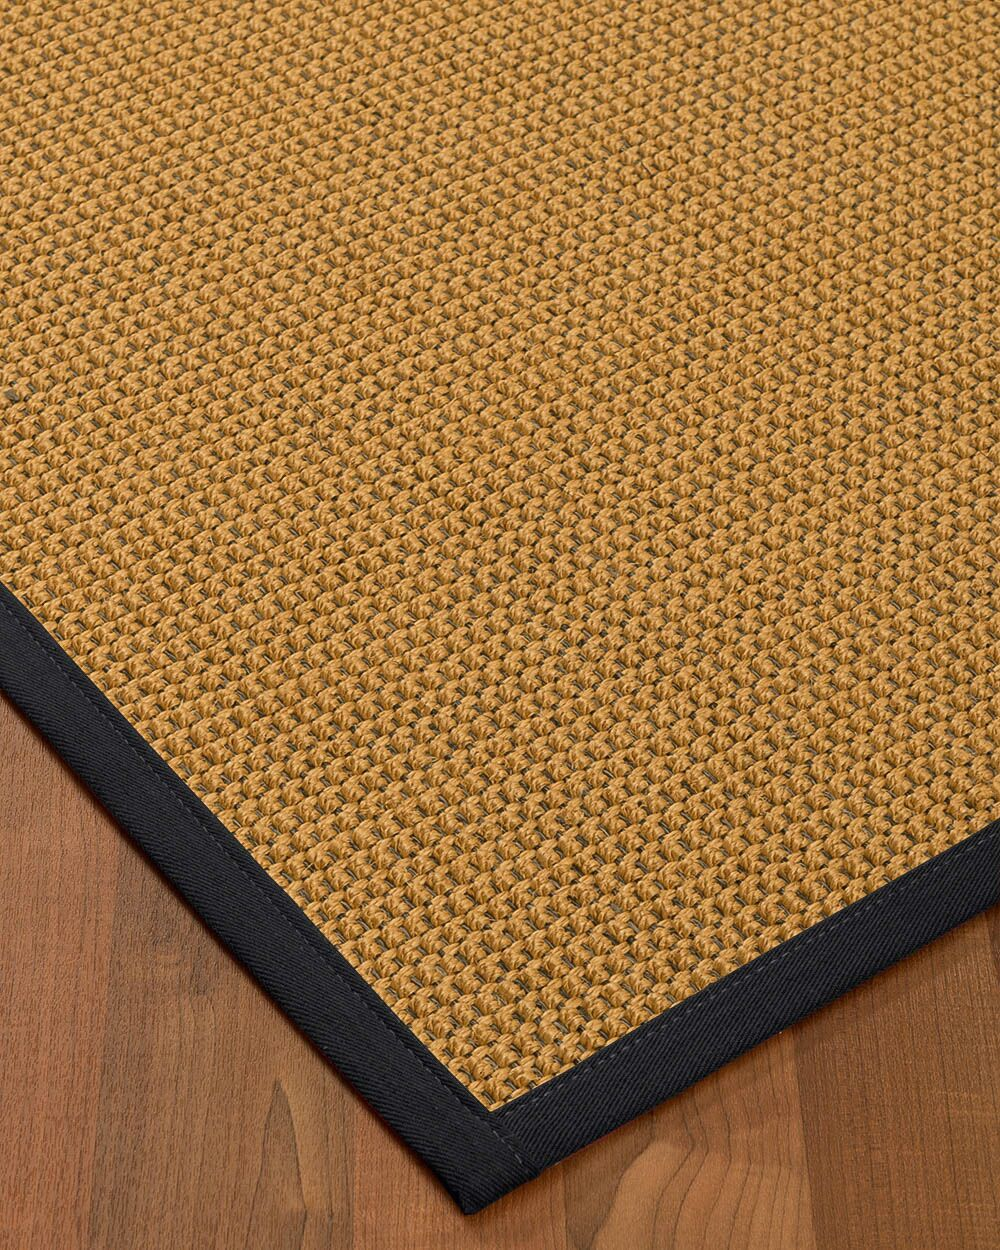 Atia Border Hand-Woven Beige/Midnight Blue Area Rug Rug Pad Included: No, Rug Size: Runner 2'6